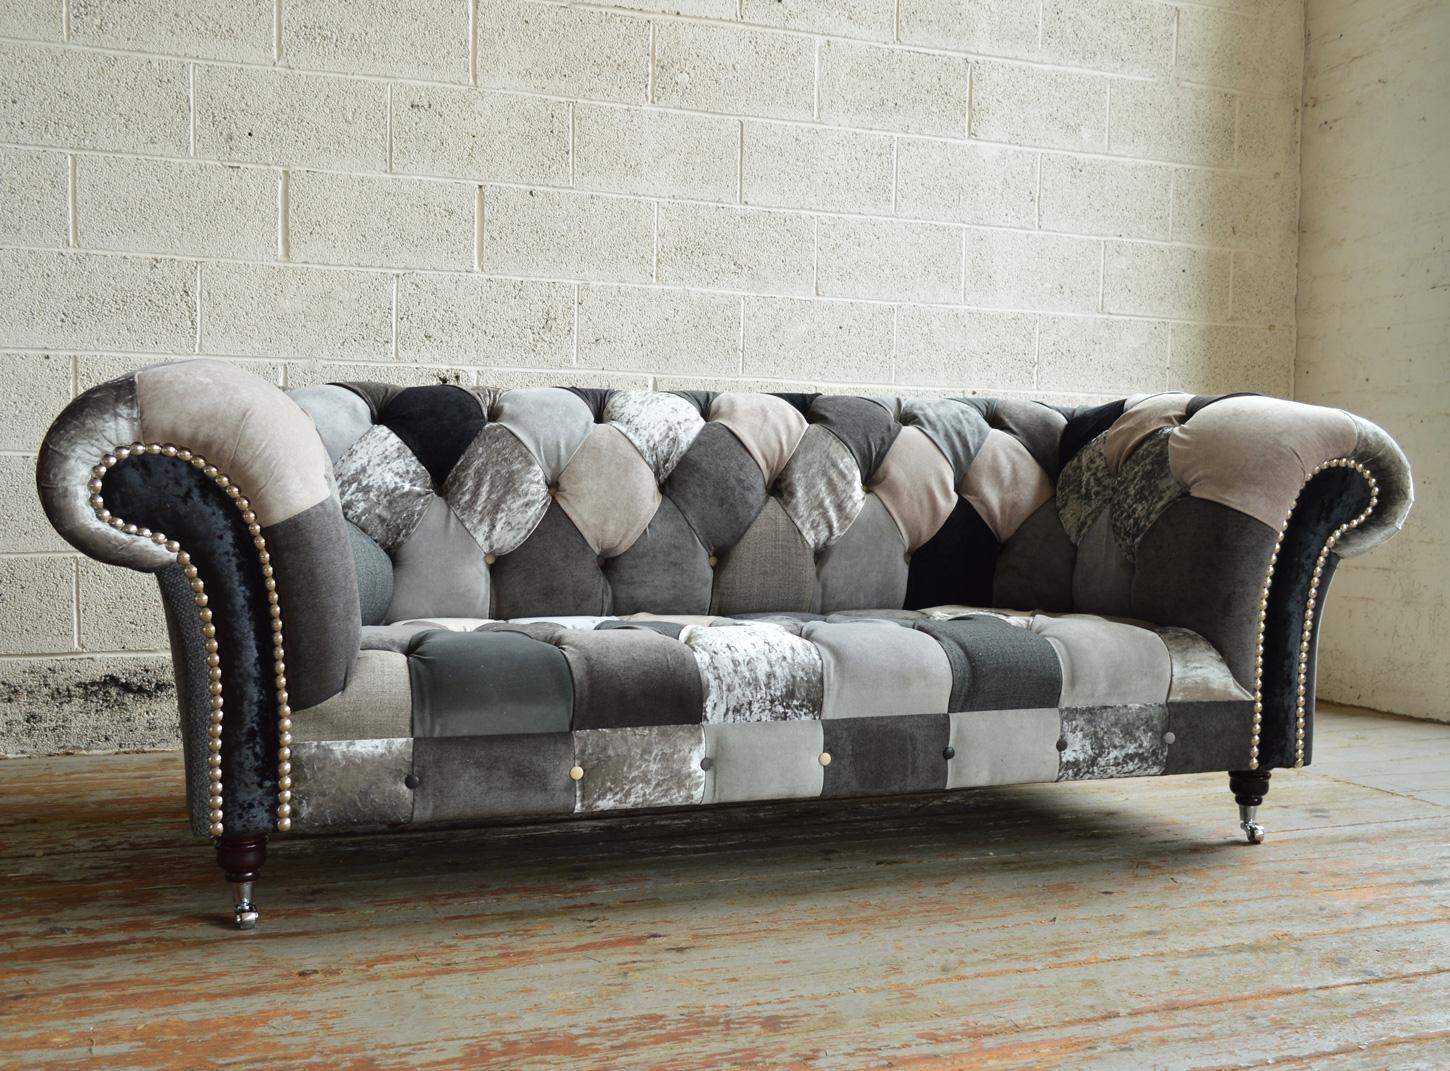 Brighton Patchwork Chesterfield Sofa | Abode Sofas With Chesterfield Sofas (View 16 of 20)